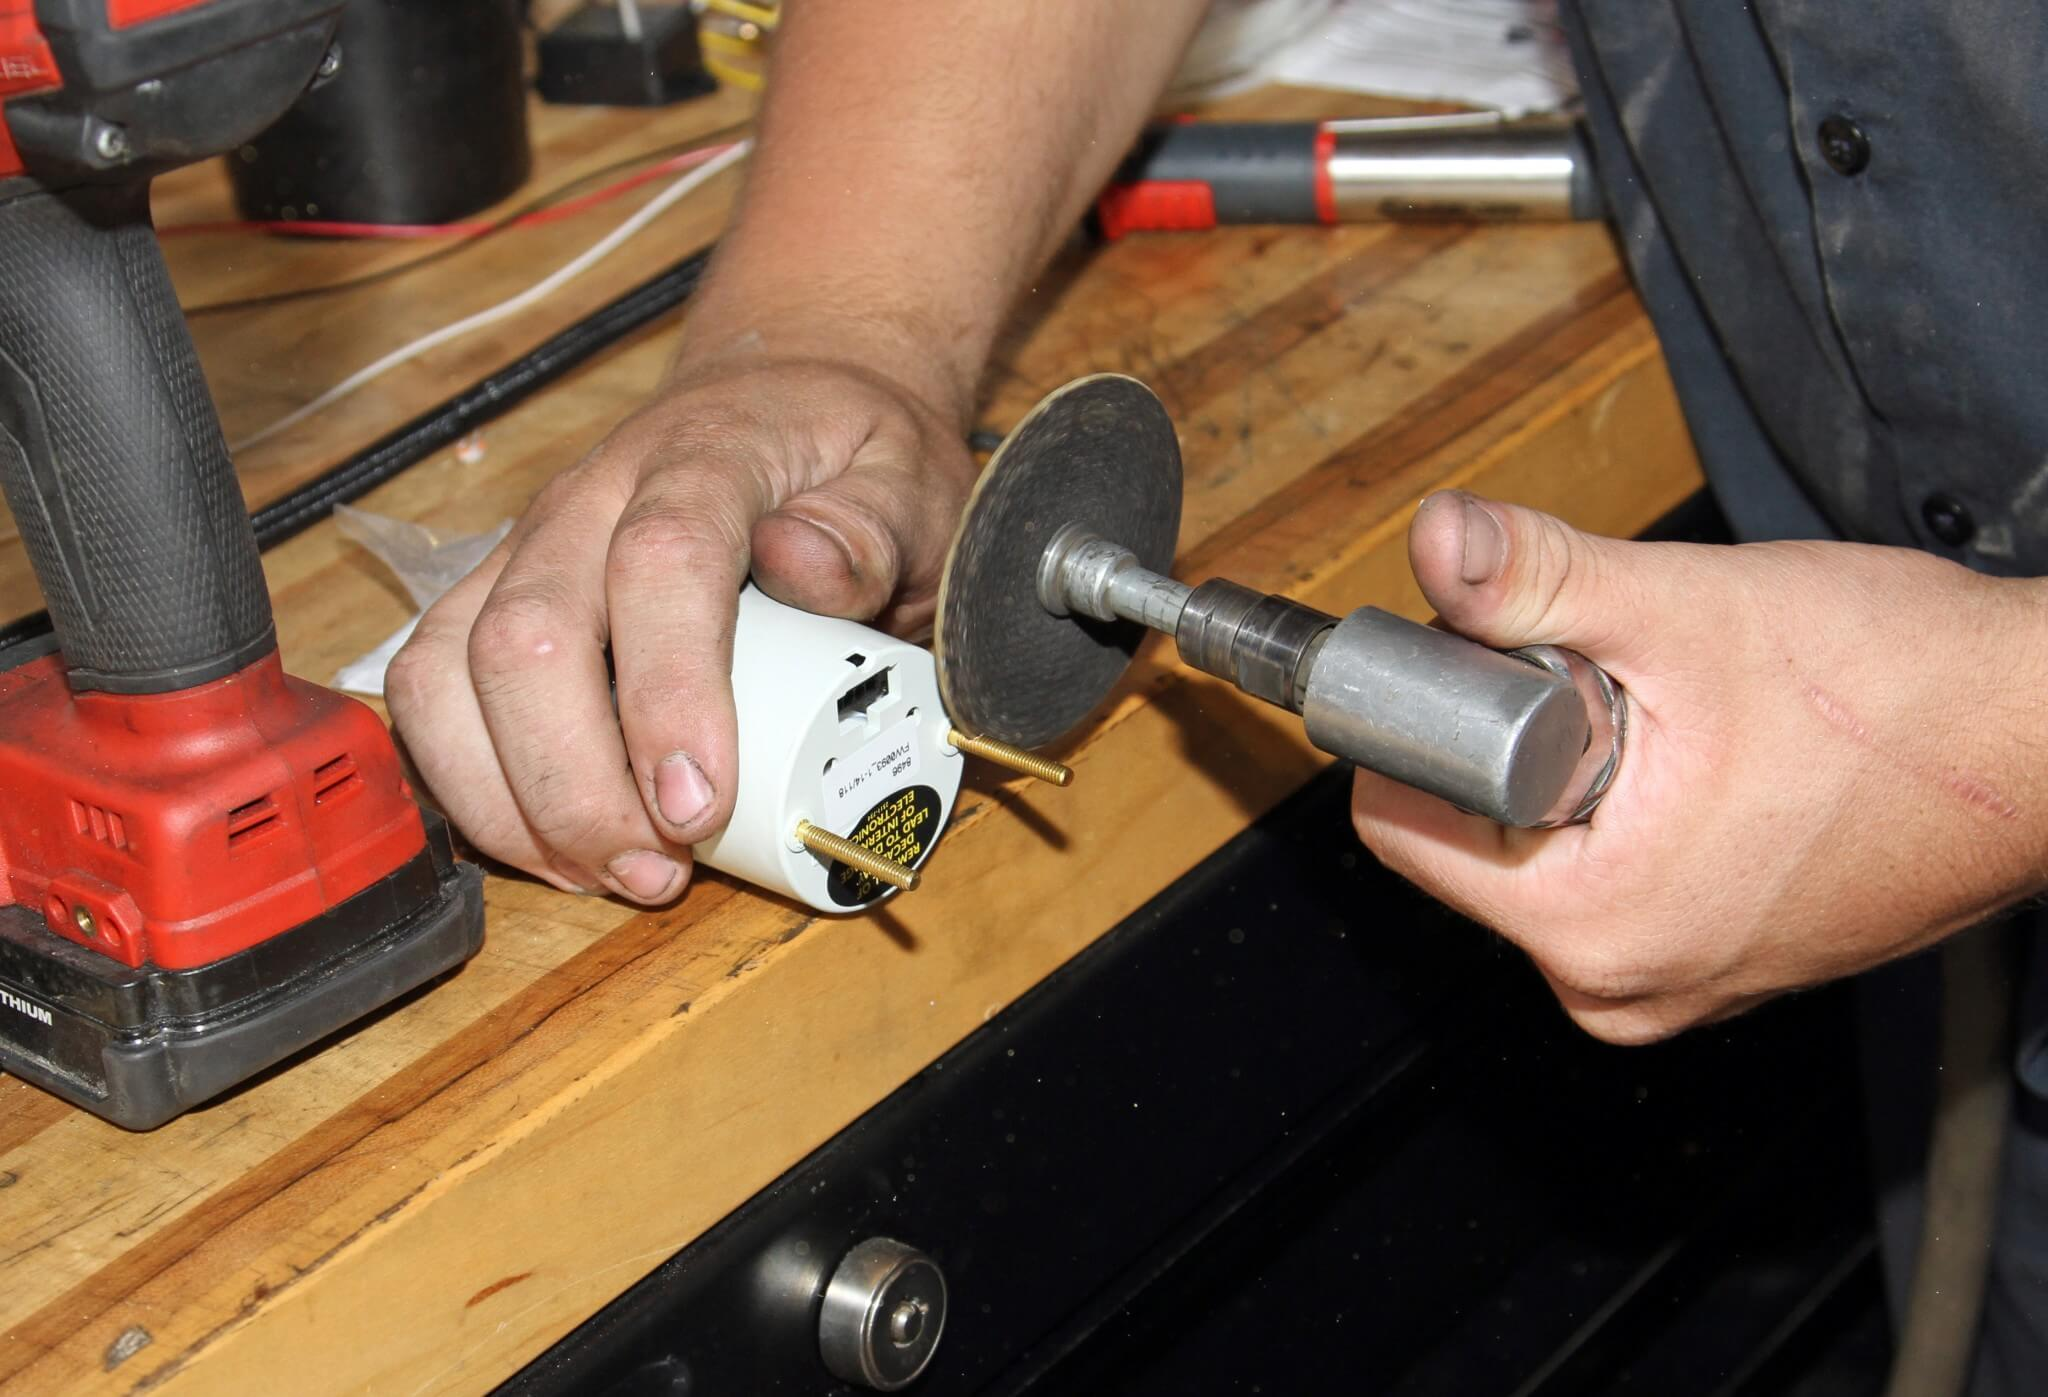 6. Carter cuts off the mounting studs from the backside of the gauge to fit the HPOP gauge in the steering column pod.